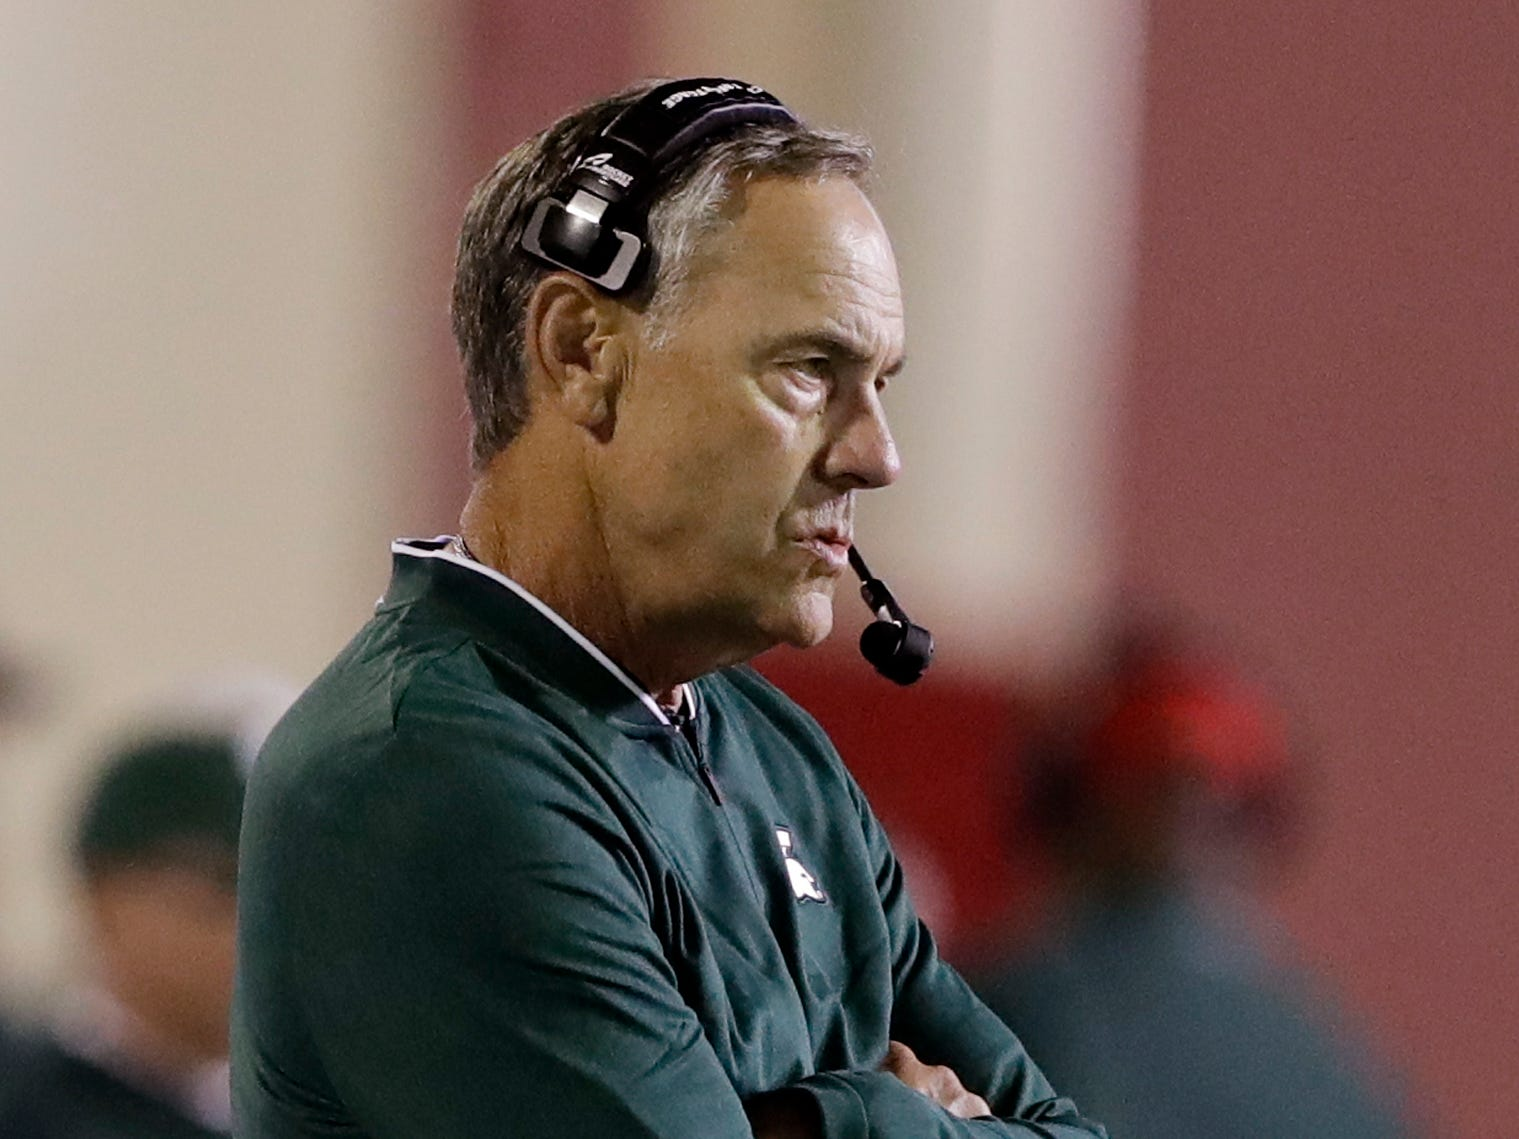 Michigan State head coach Mark Dantonio watches during the first half of an NCAA college football game against Indiana, Saturday, Sept. 22, 2018, in Bloomington, Ind.